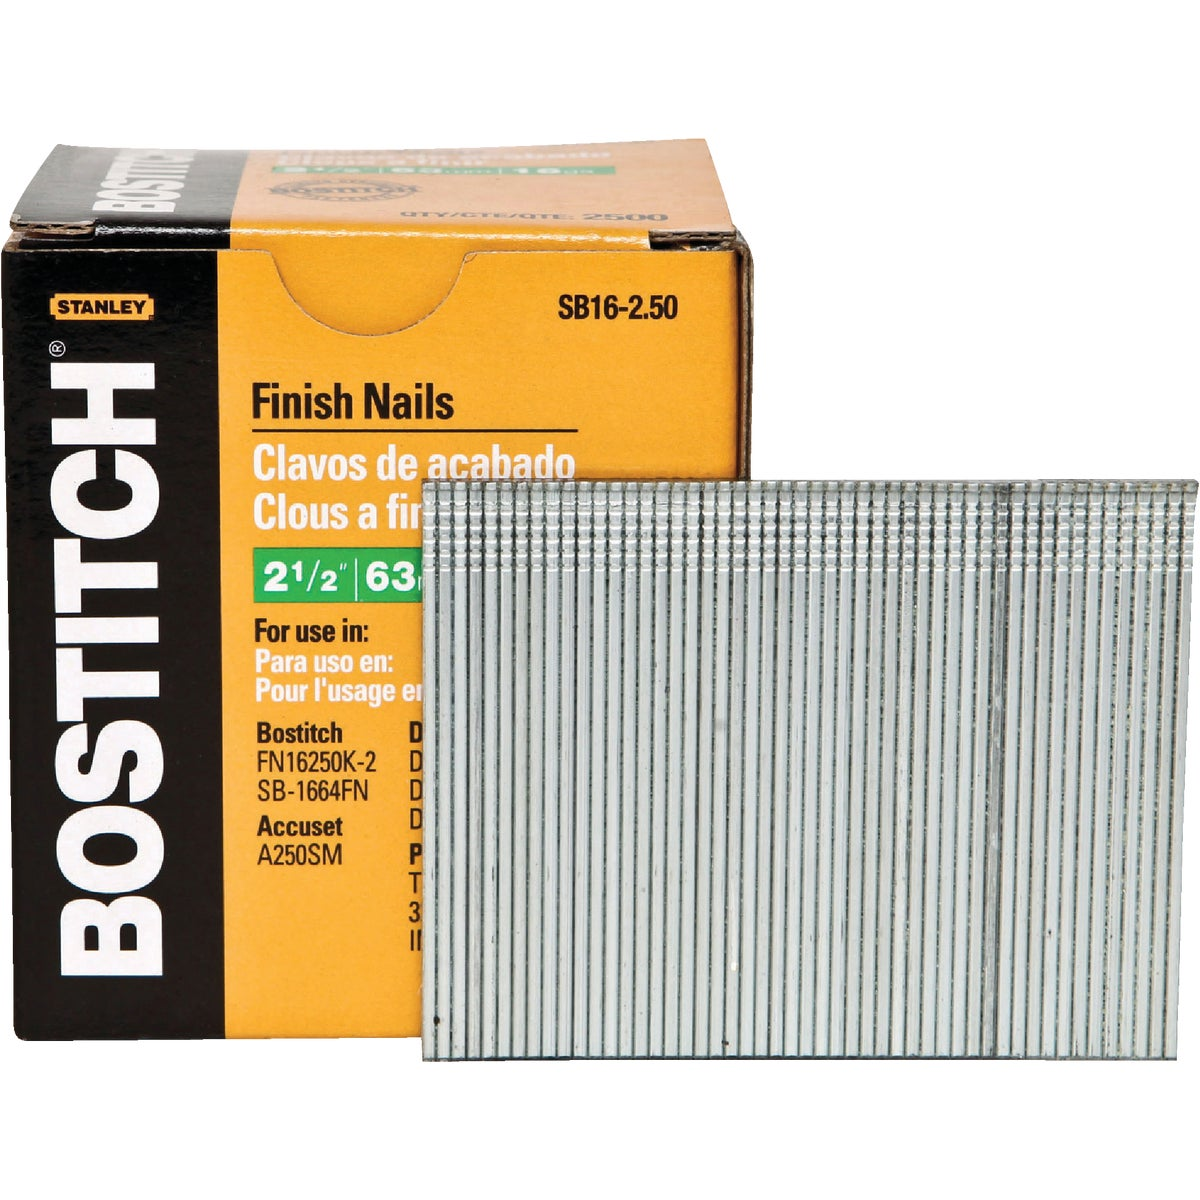 "2-1/2"" 16GA FINISH NAIL - SB16-2.50 by Stanley Bostitch"